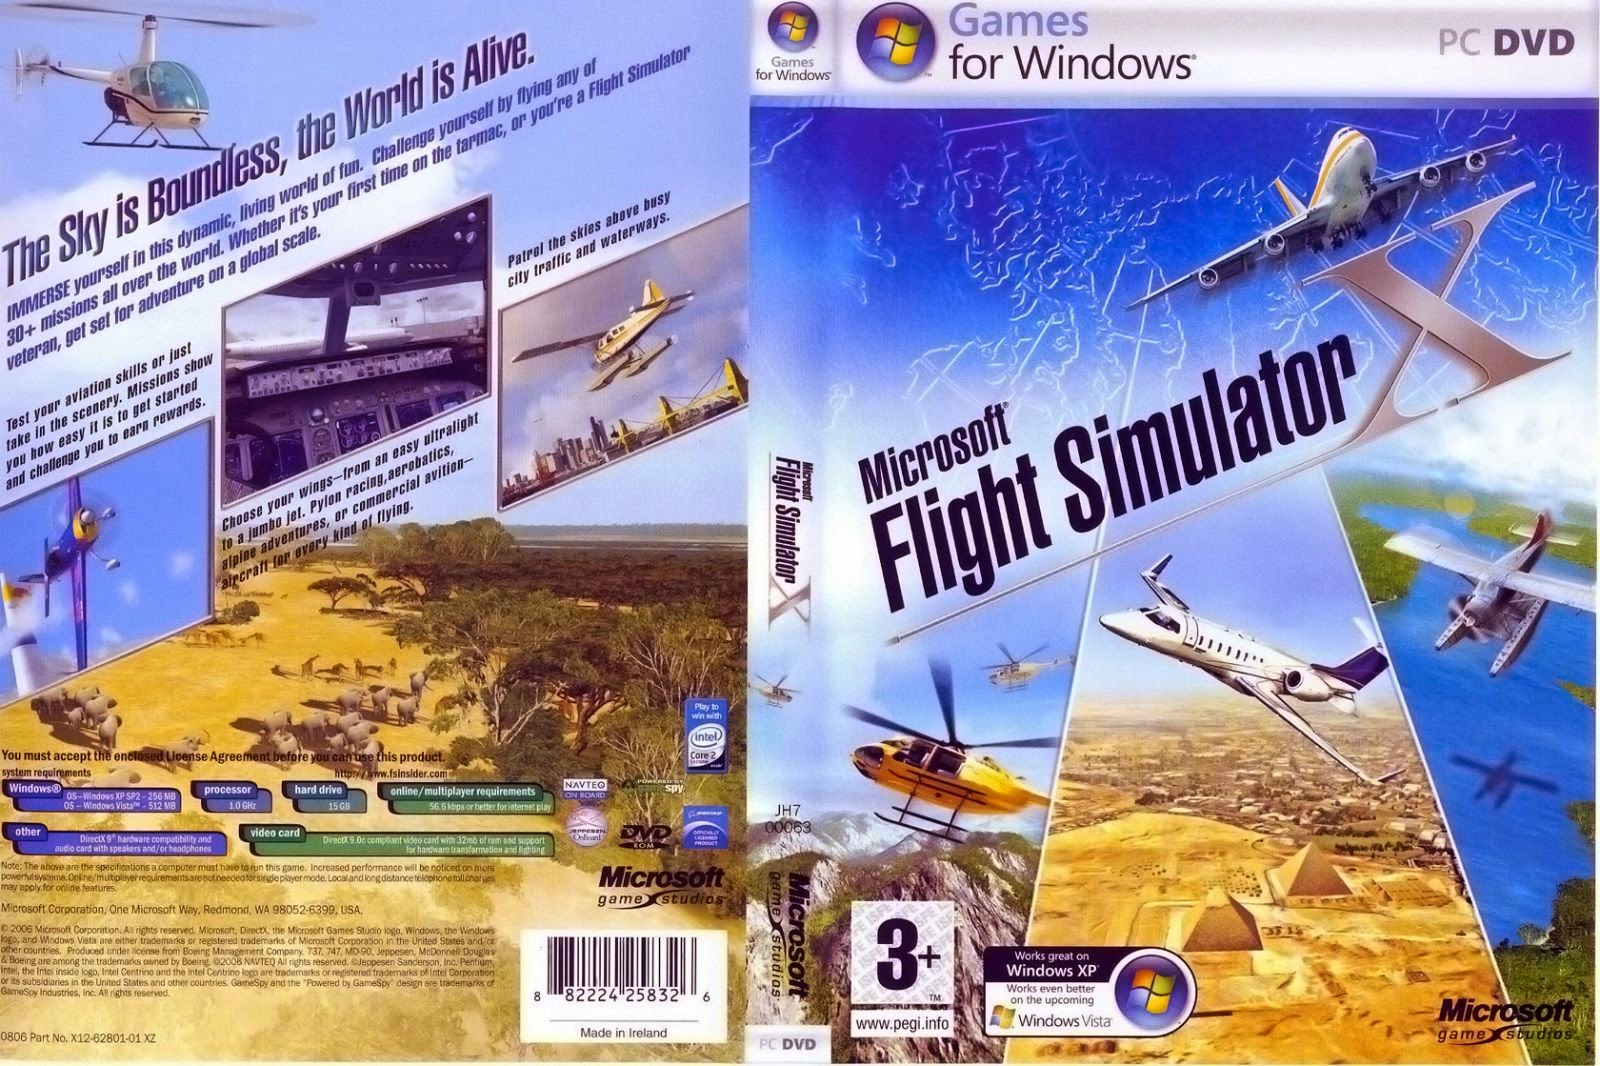 X-plane game free download full version « War Thunder, new